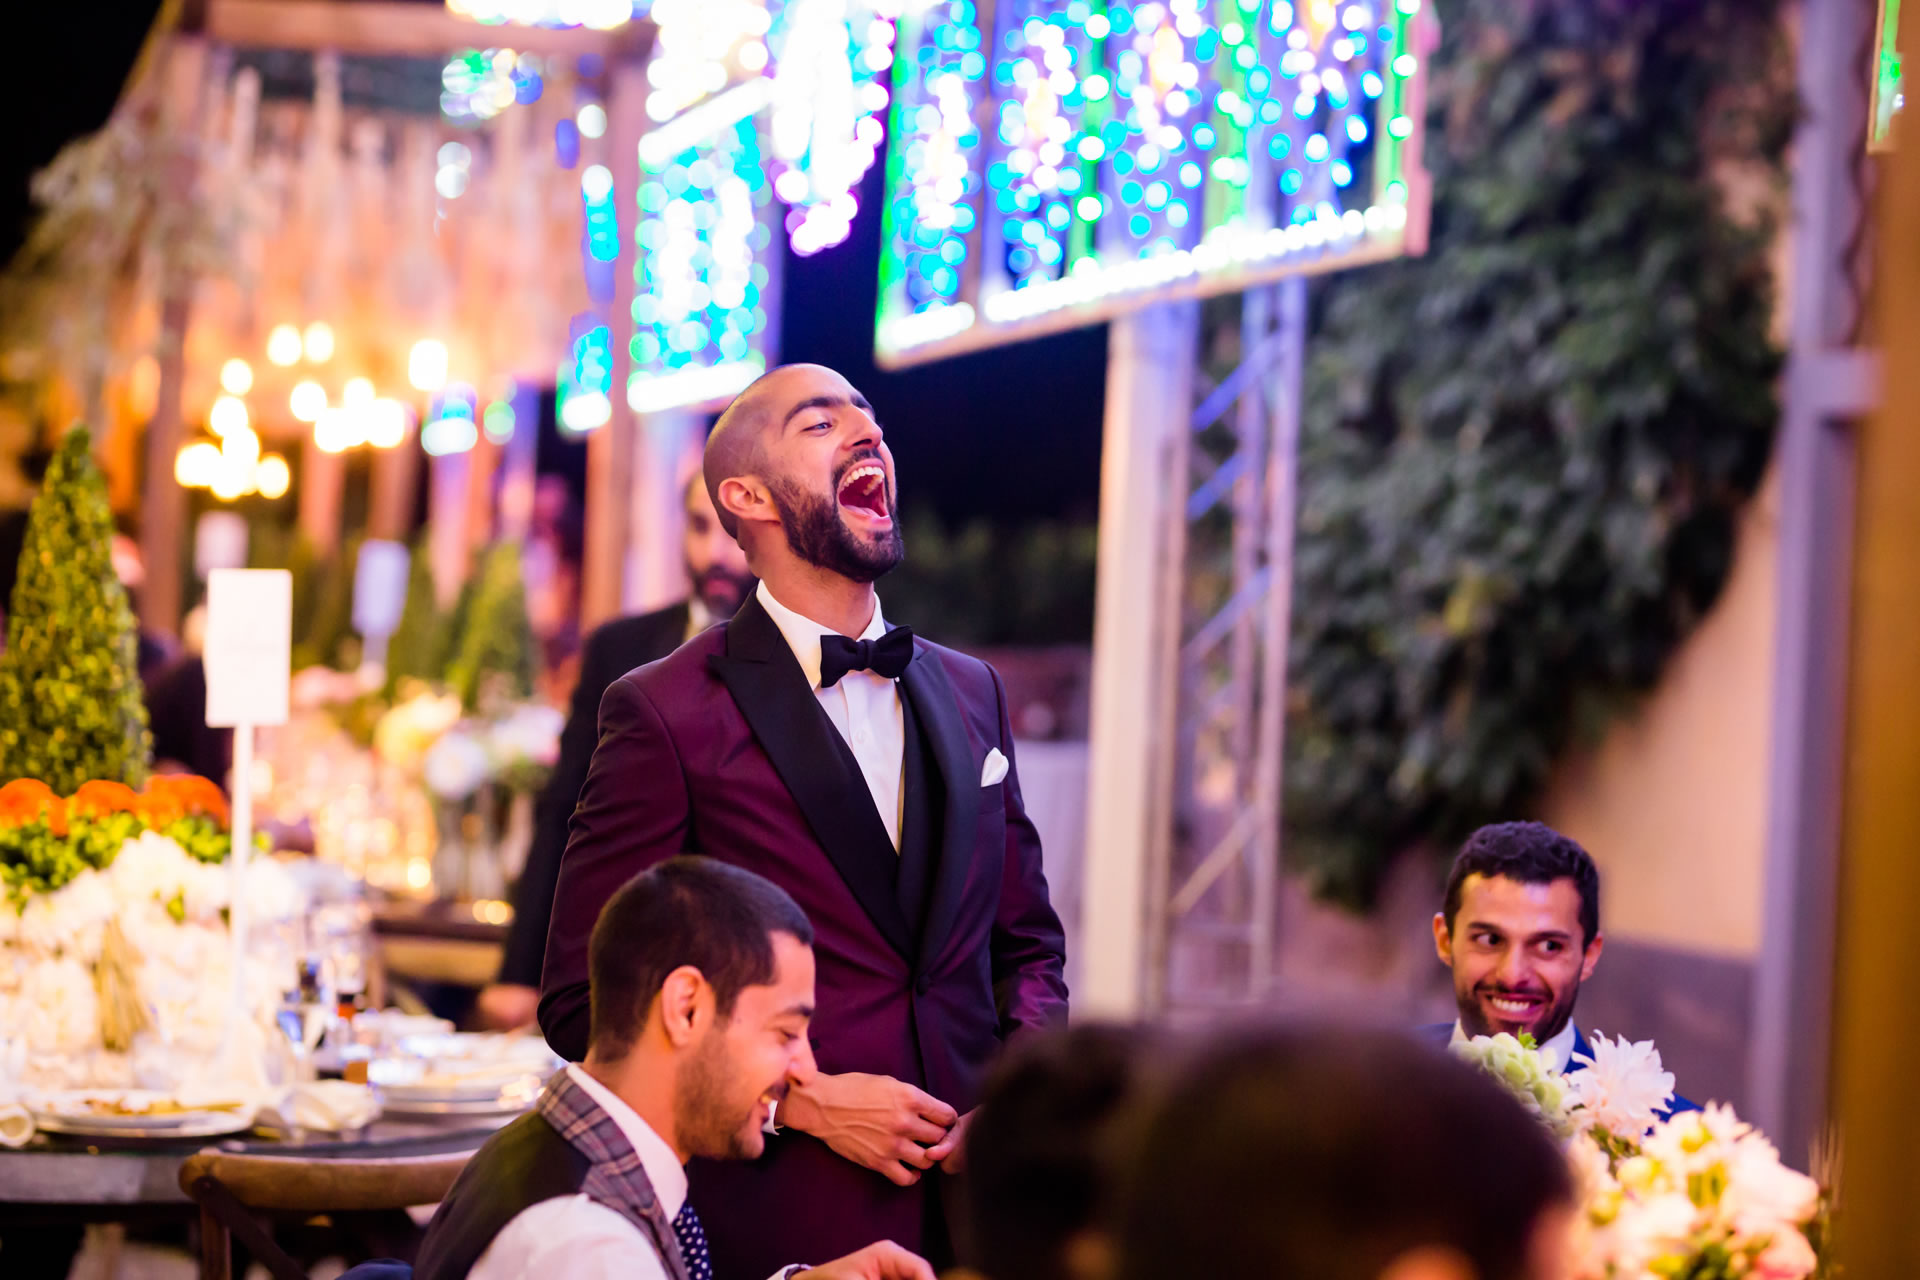 Laughter - 58 :: Luxury wedding at Il Borro :: Luxury wedding photography - 57 :: Laughter - 58